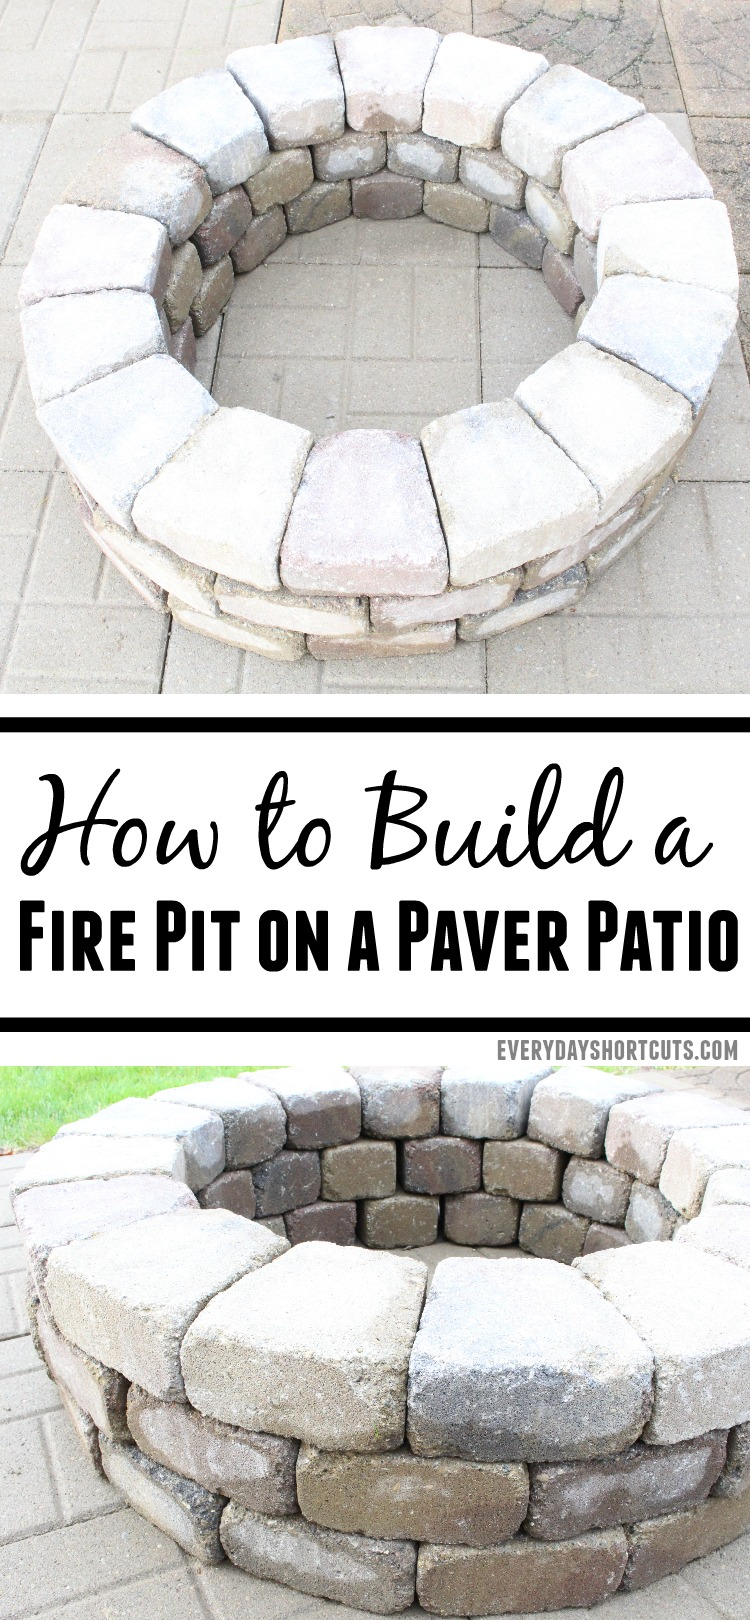 How to Build a Fire Pit On a Paver Patio - Everyday Shortcuts on Pavers Patio With Fire Pit id=39563